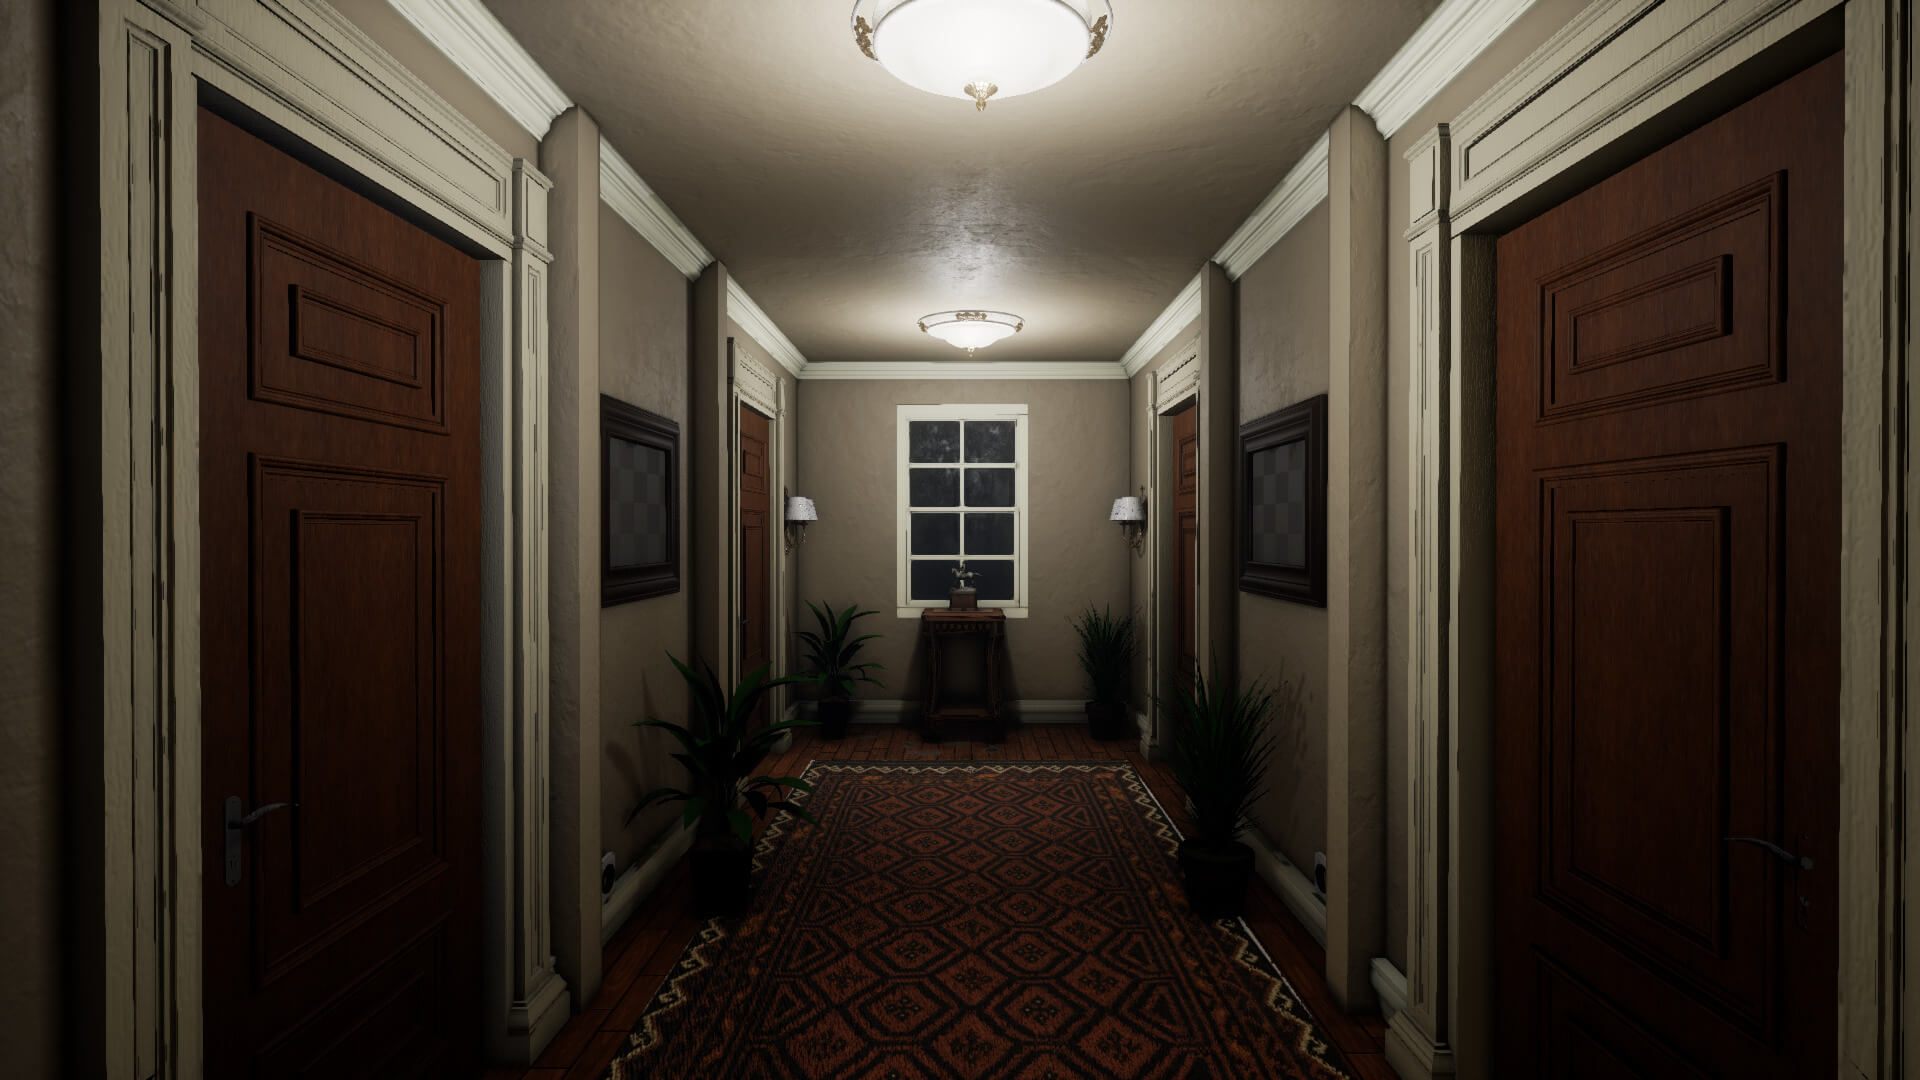 Forbidden Forgiveness is a new Unreal Engine 4-powered psychological